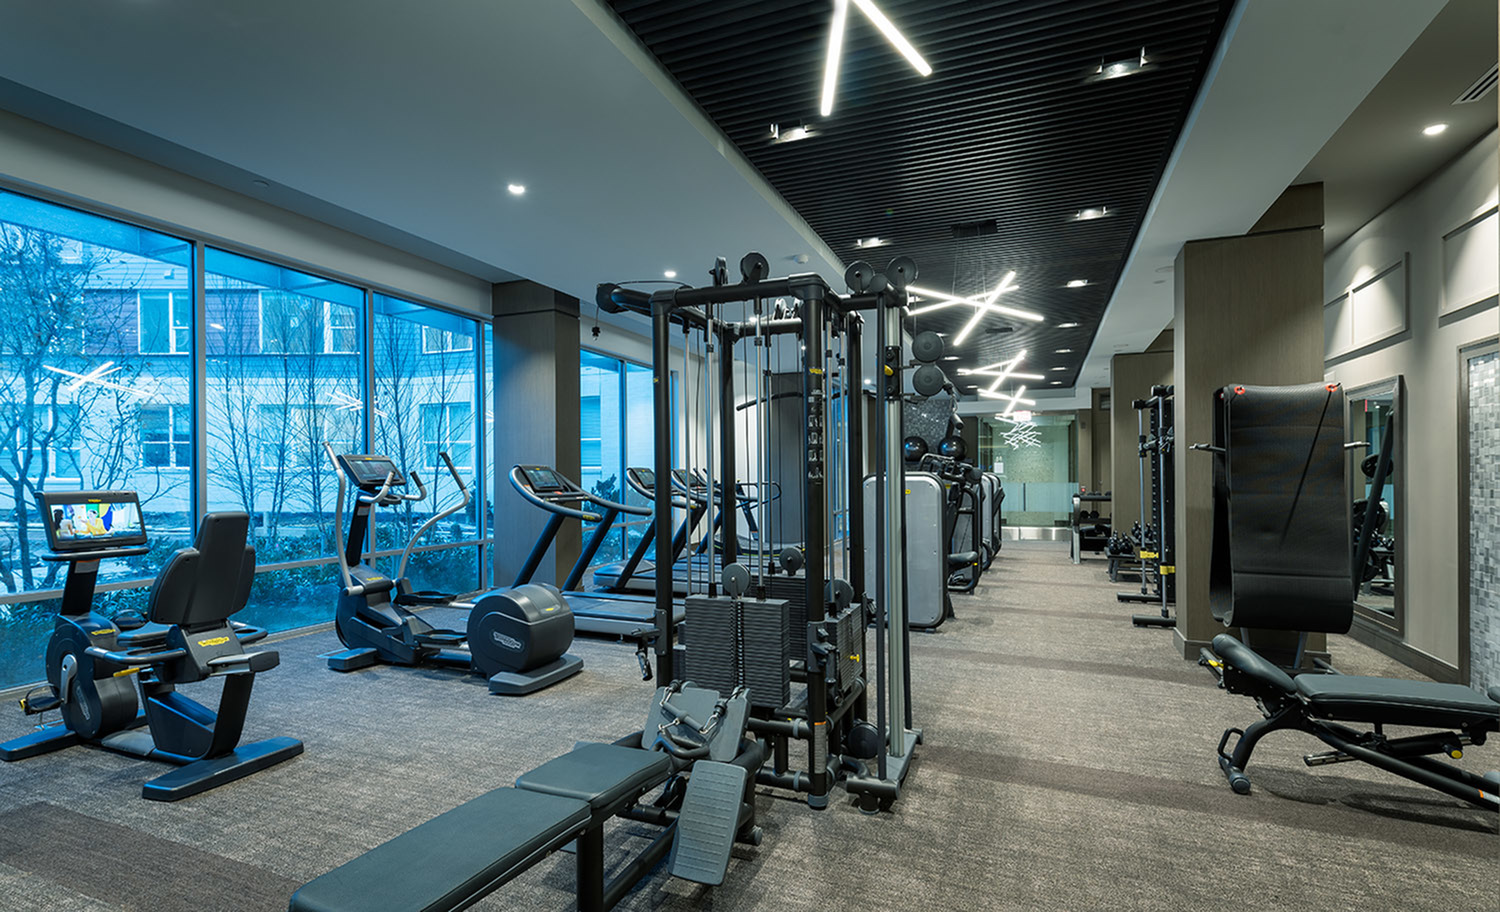 Expansive 24-hour Fitness Center with TechnoGym, TRX, and Peloton On-Demand Bikes at Hanover Town Center